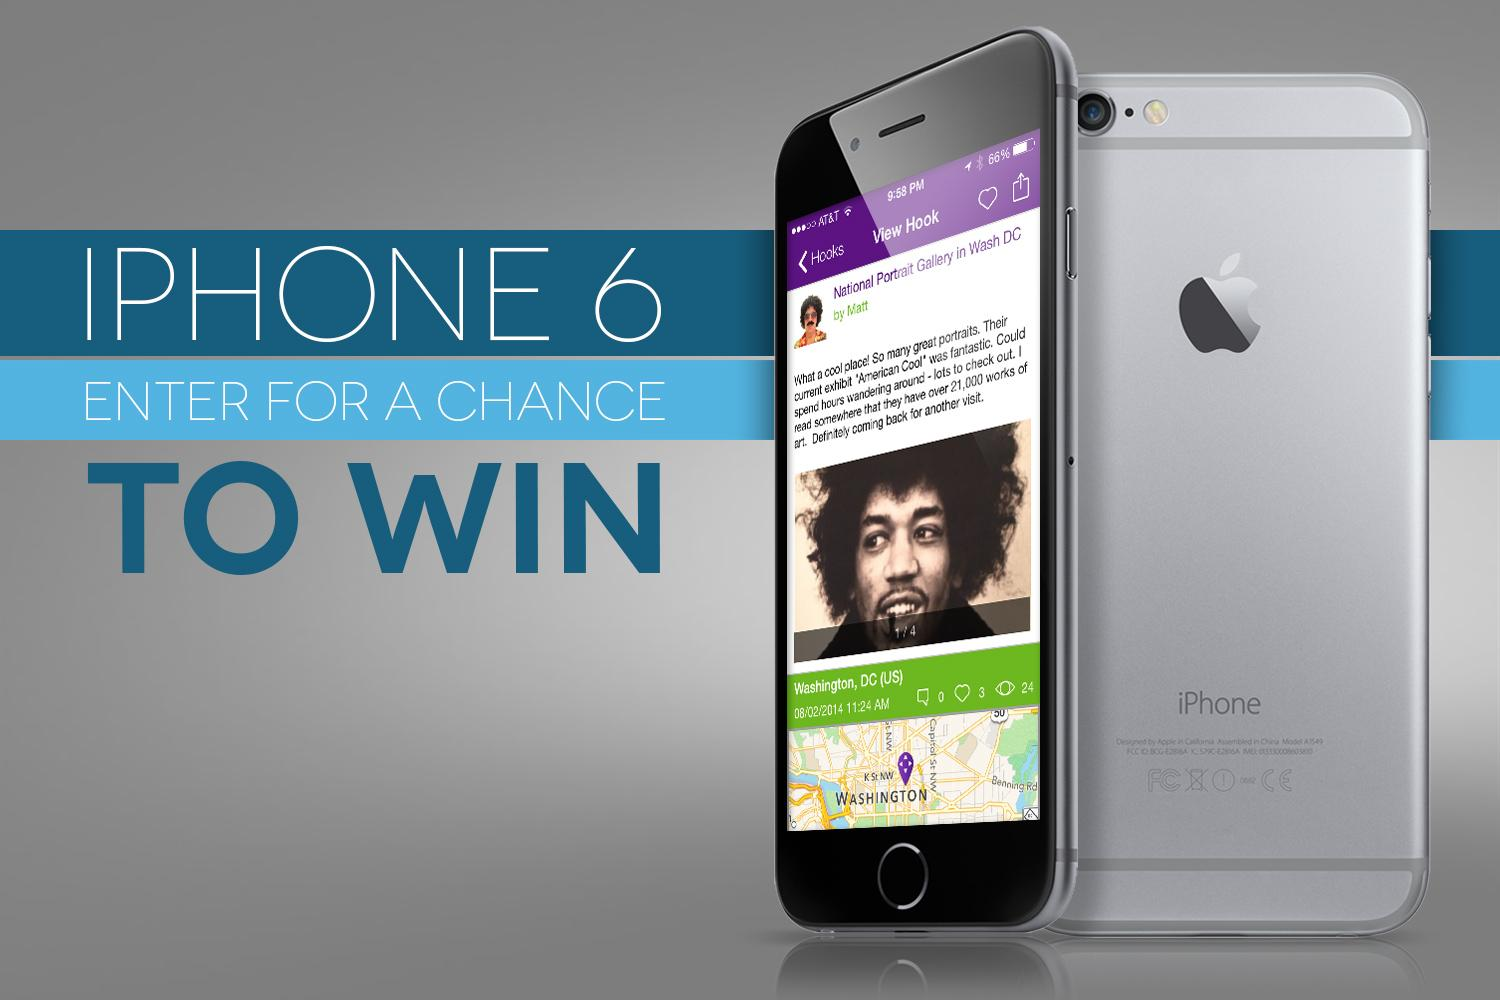 Win iPhone 6 et iPhone 6s